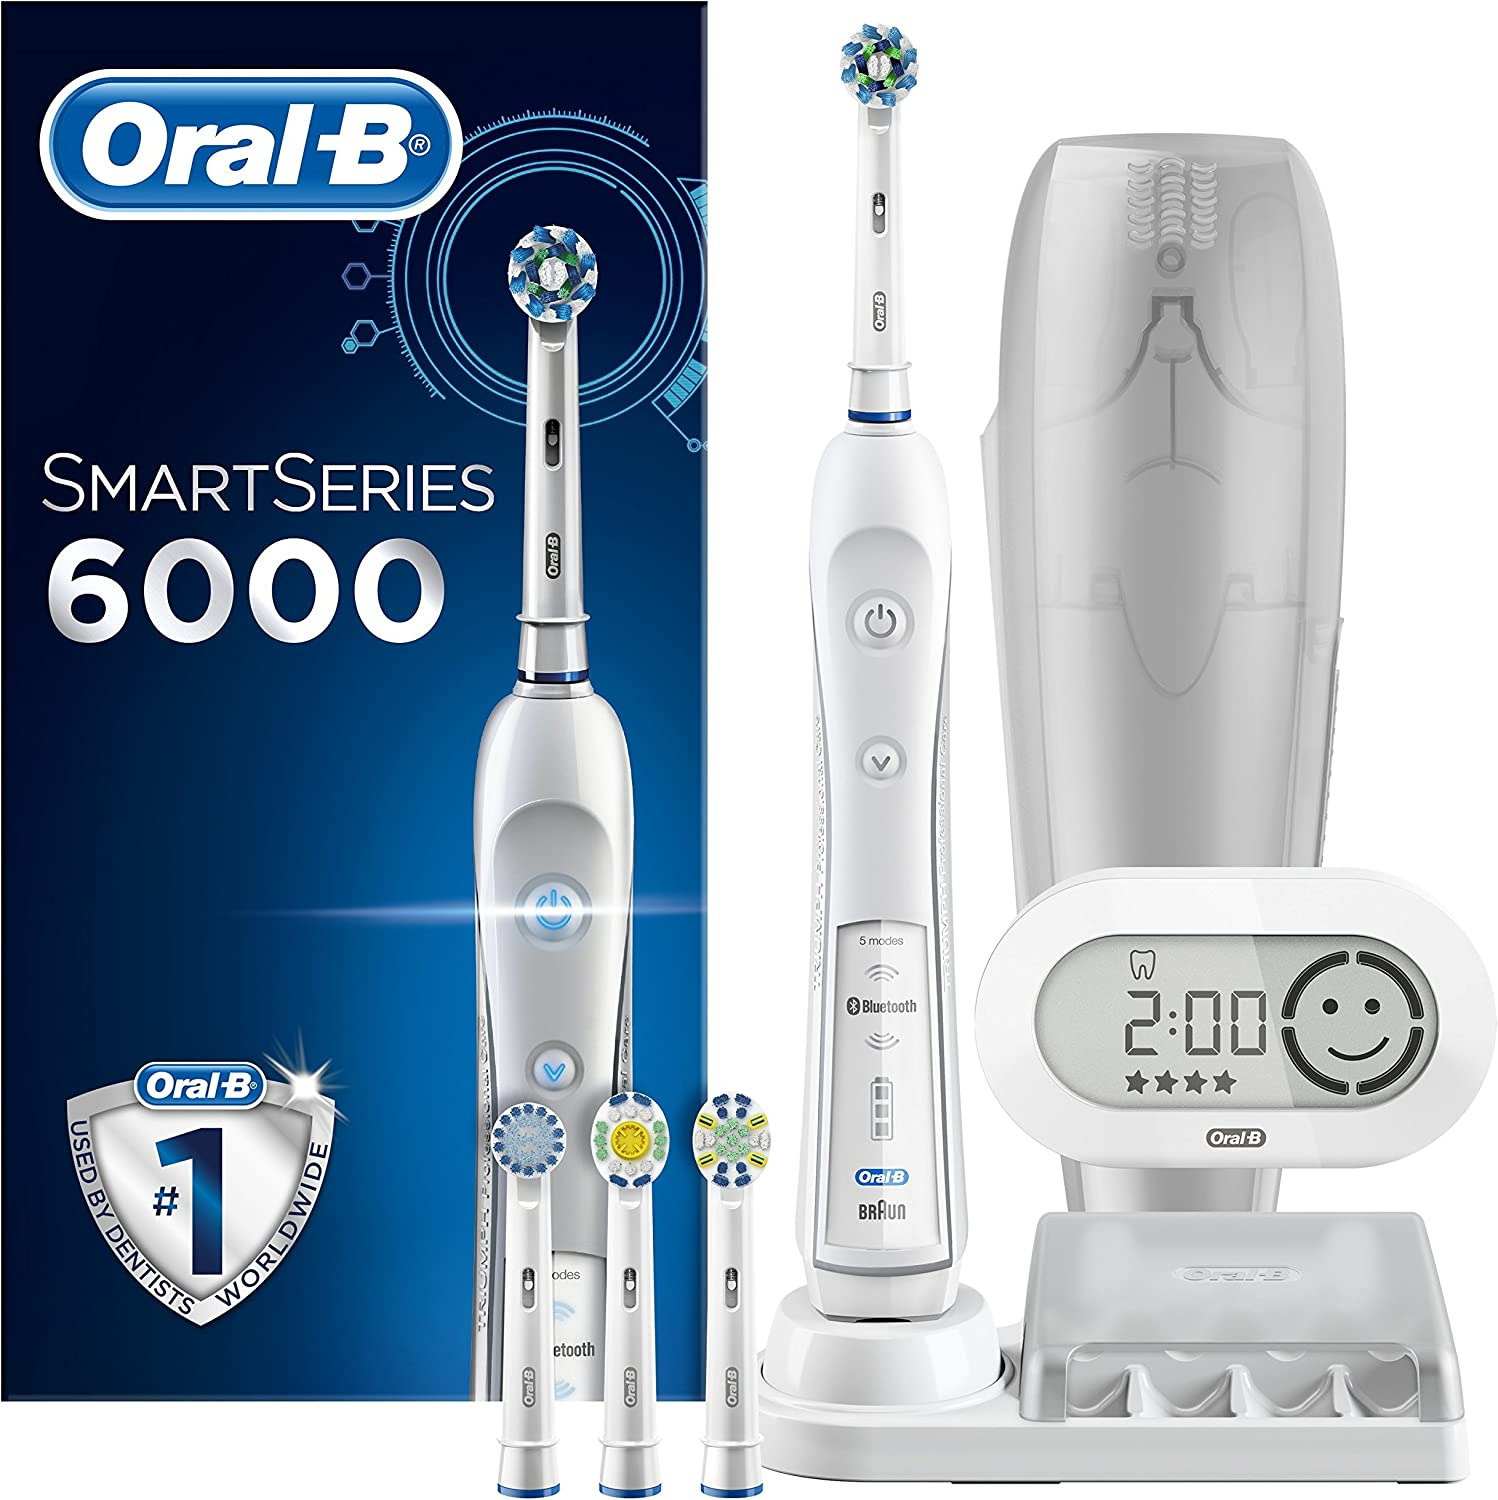 Oral B SmartSeries 6000 CrossAction Electric Toothbrush, 1